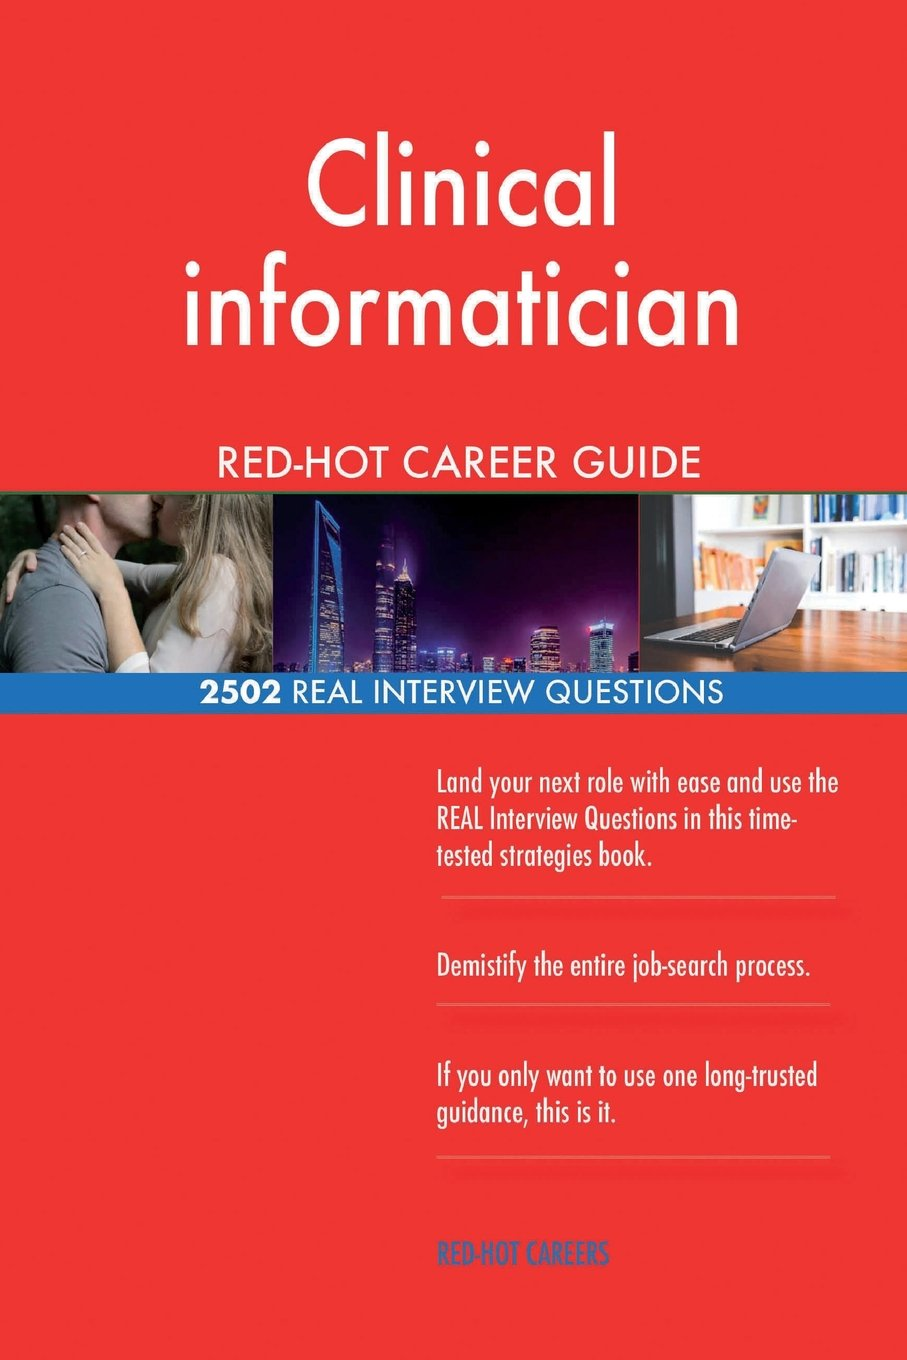 Download Clinical informatician RED-HOT Career Guide; 2502 REAL Interview Questions PDF